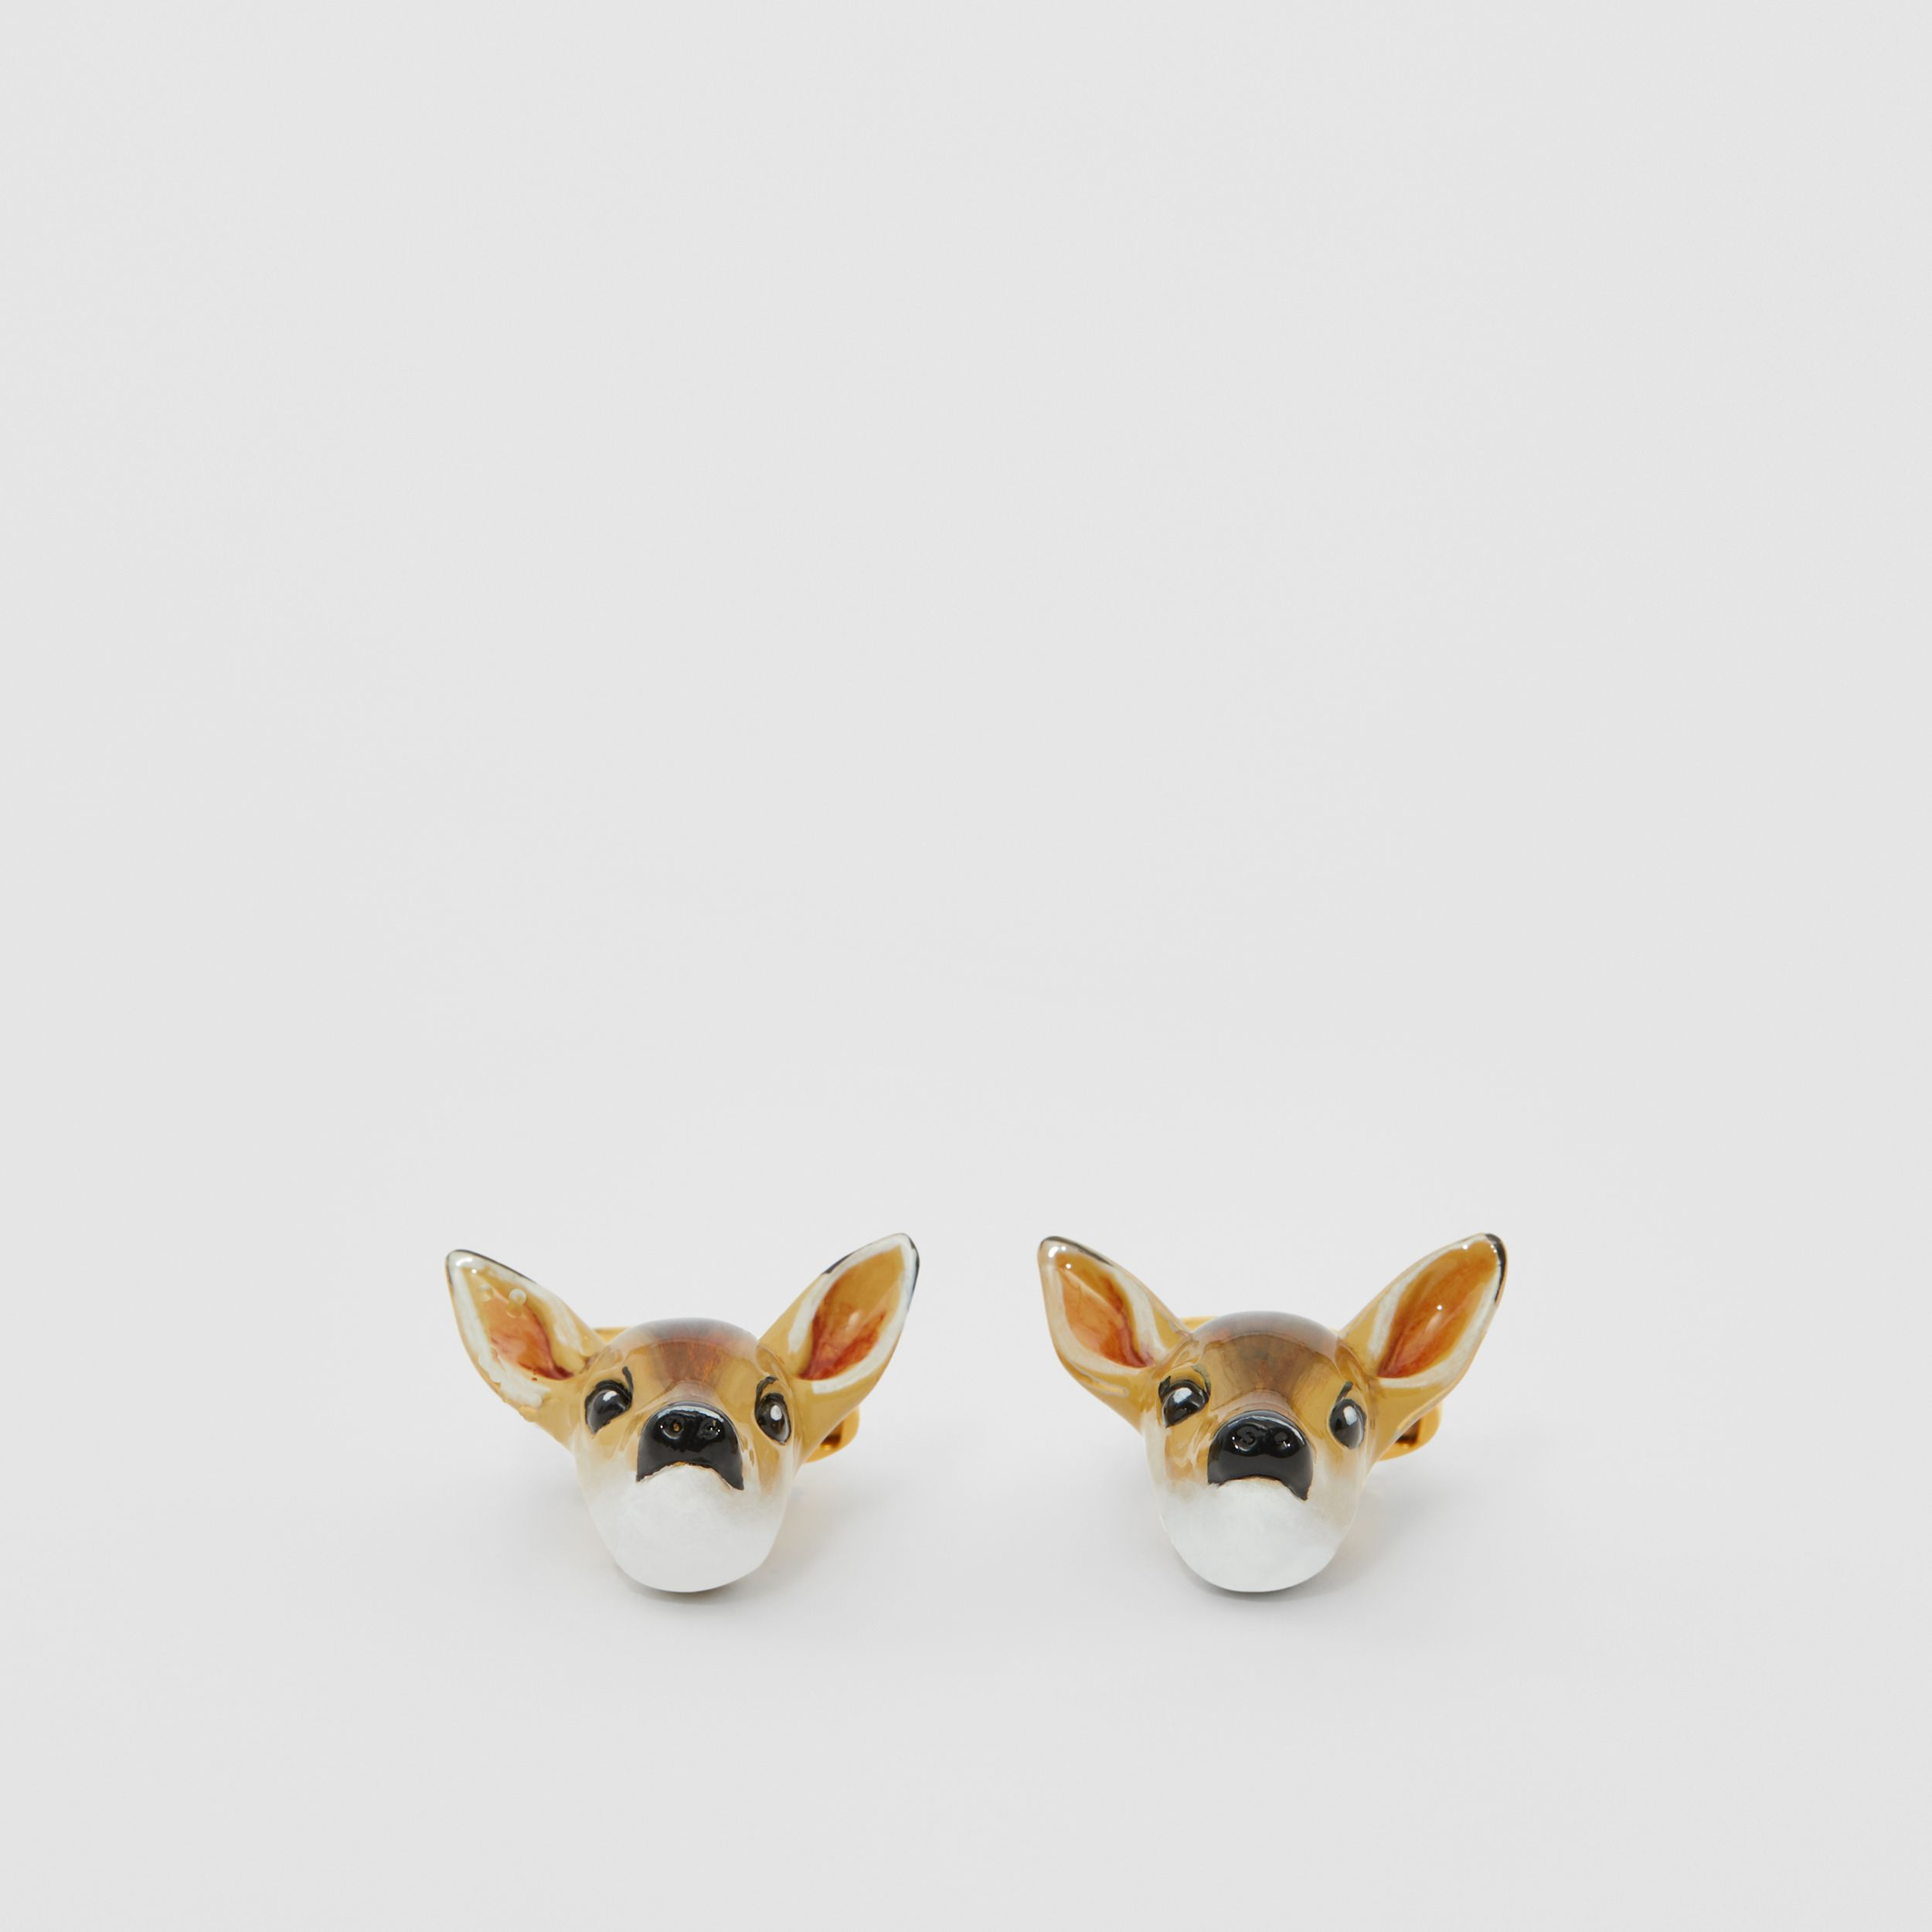 Deer Motif Gold-plated Cufflinks in Brown/white - Men | Burberry - 1